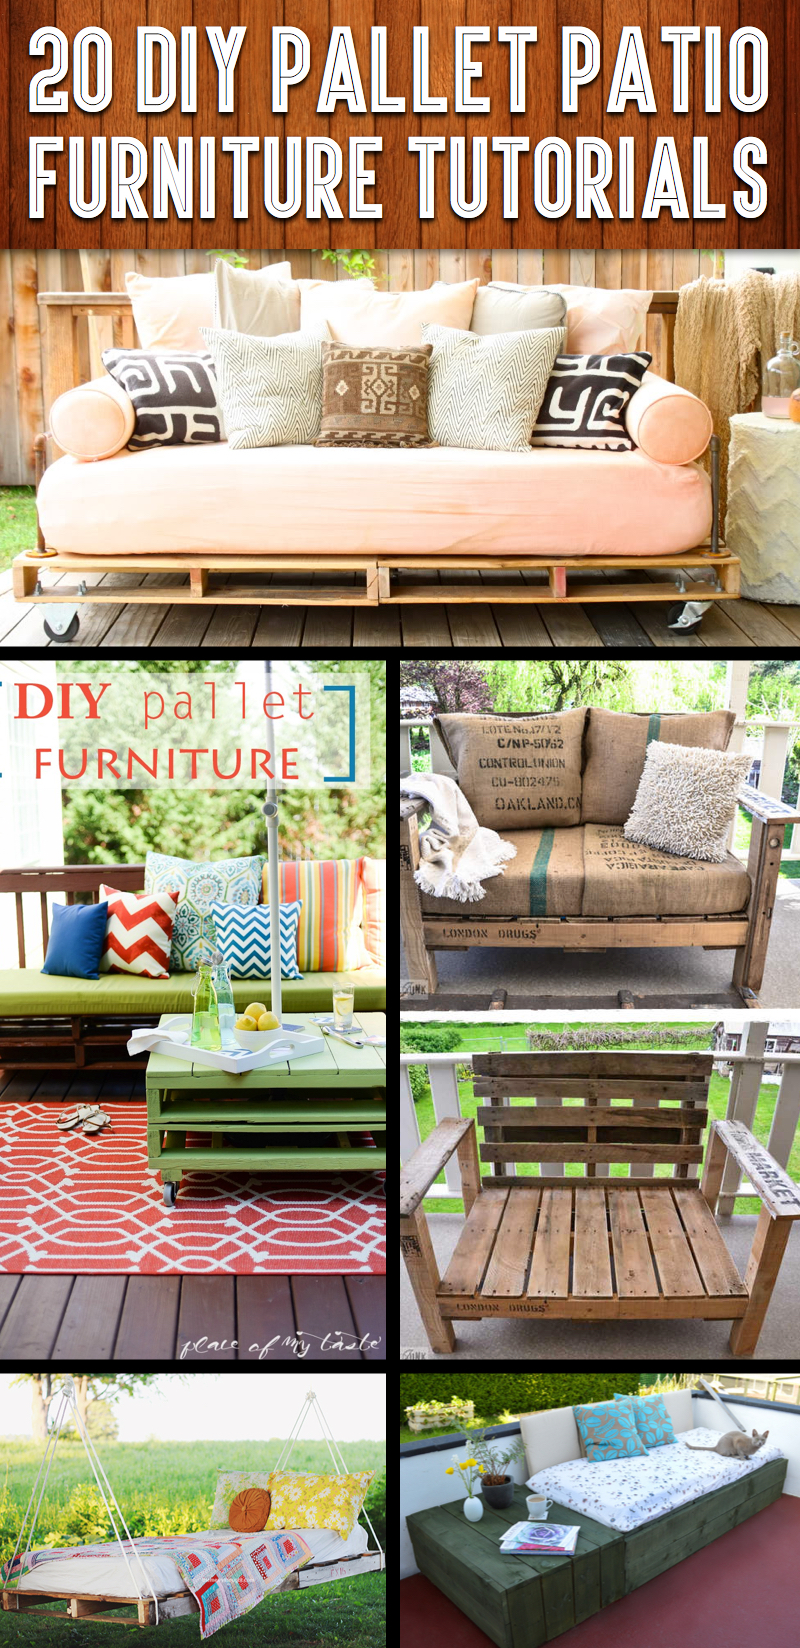 20 DIY Pallet Patio Furniture Tutorials For A Chic And Practical